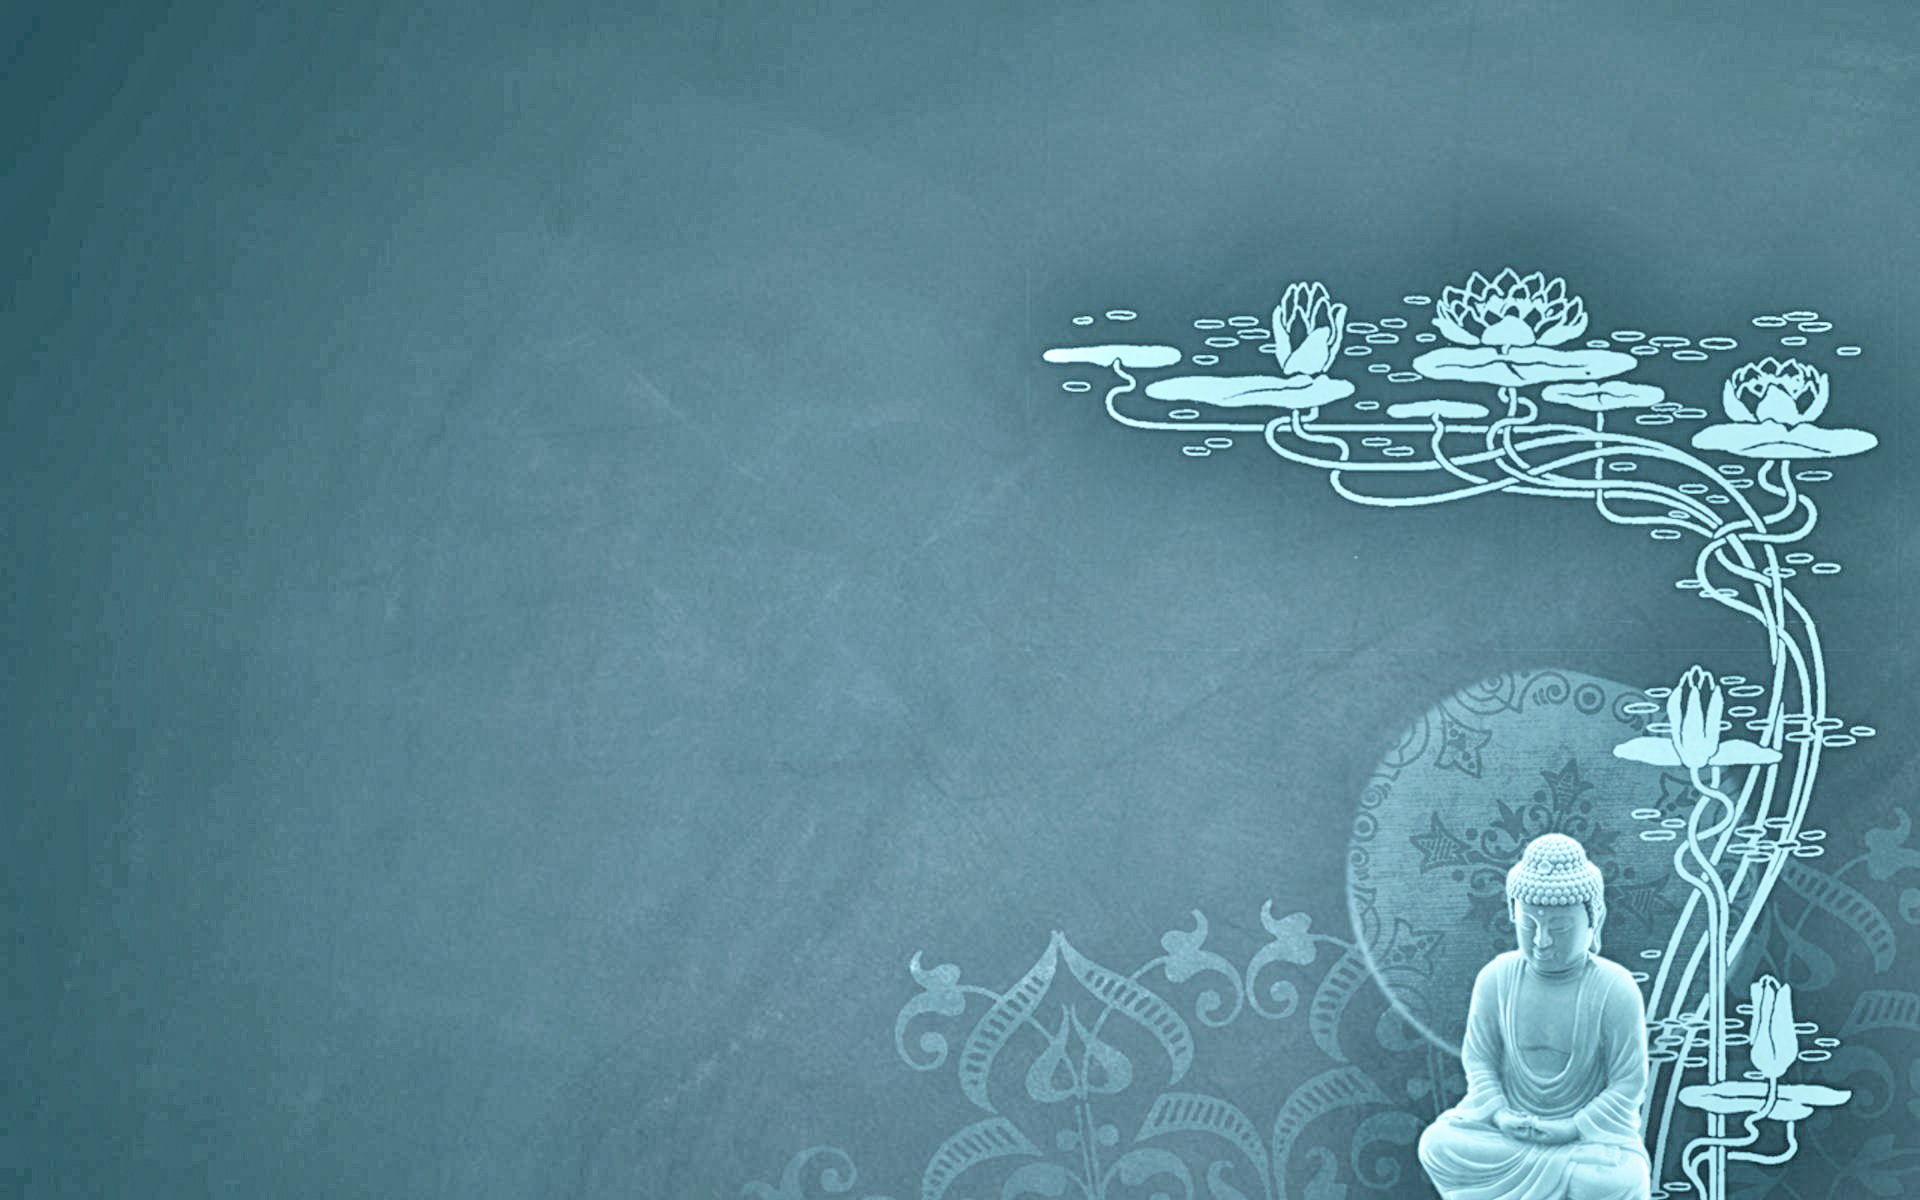 Buddhism Computer Wallpapers Desktop Backgrounds 1920x1200 ID 1920x1200